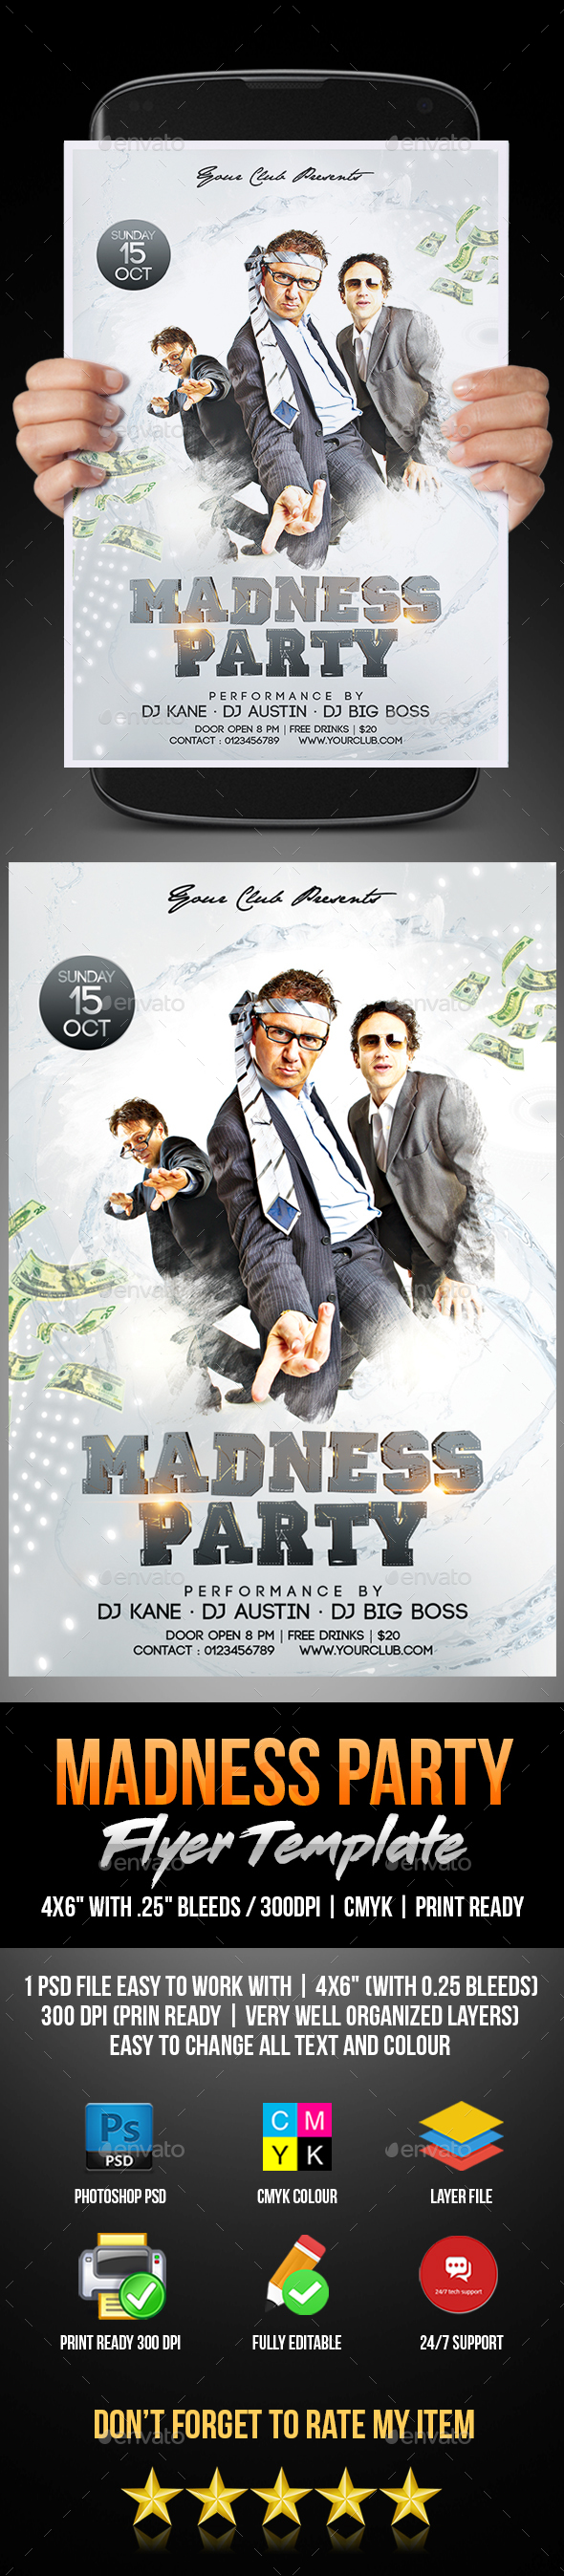 Madness Party Flyer - Flyers Print Templates